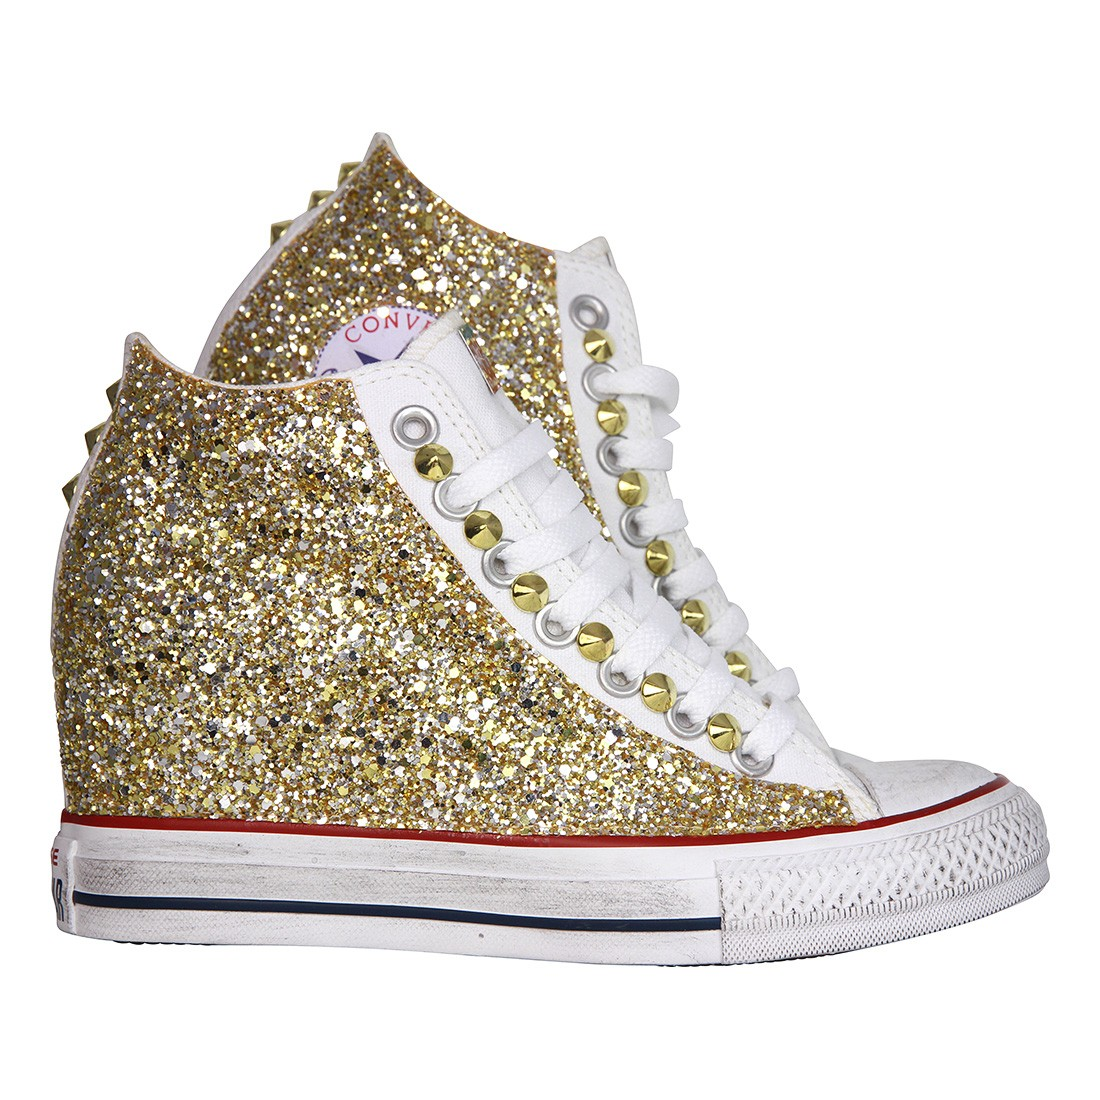 converse all star con tacco interno